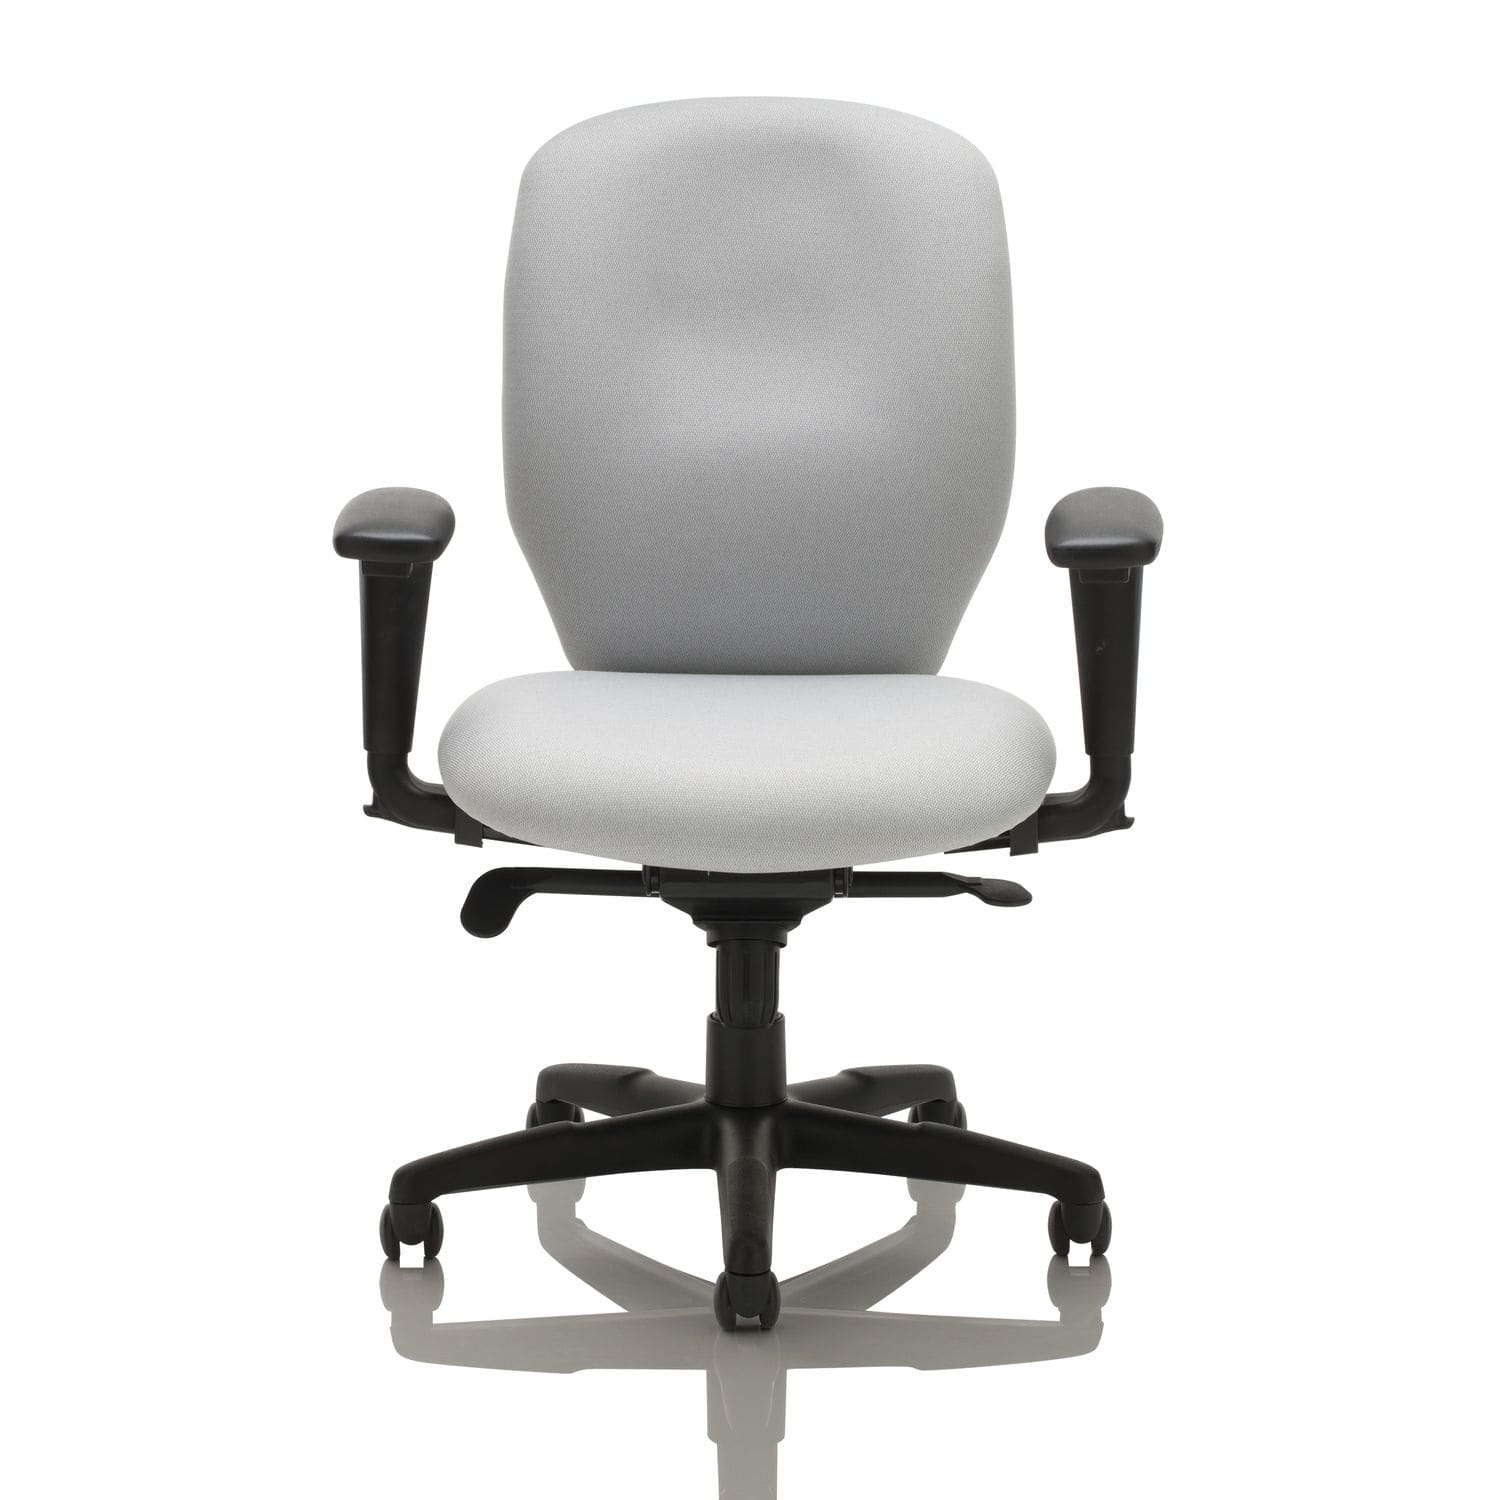 Contemporary Office Chair / On Casters / With Armrests / Star Base   SAVVY